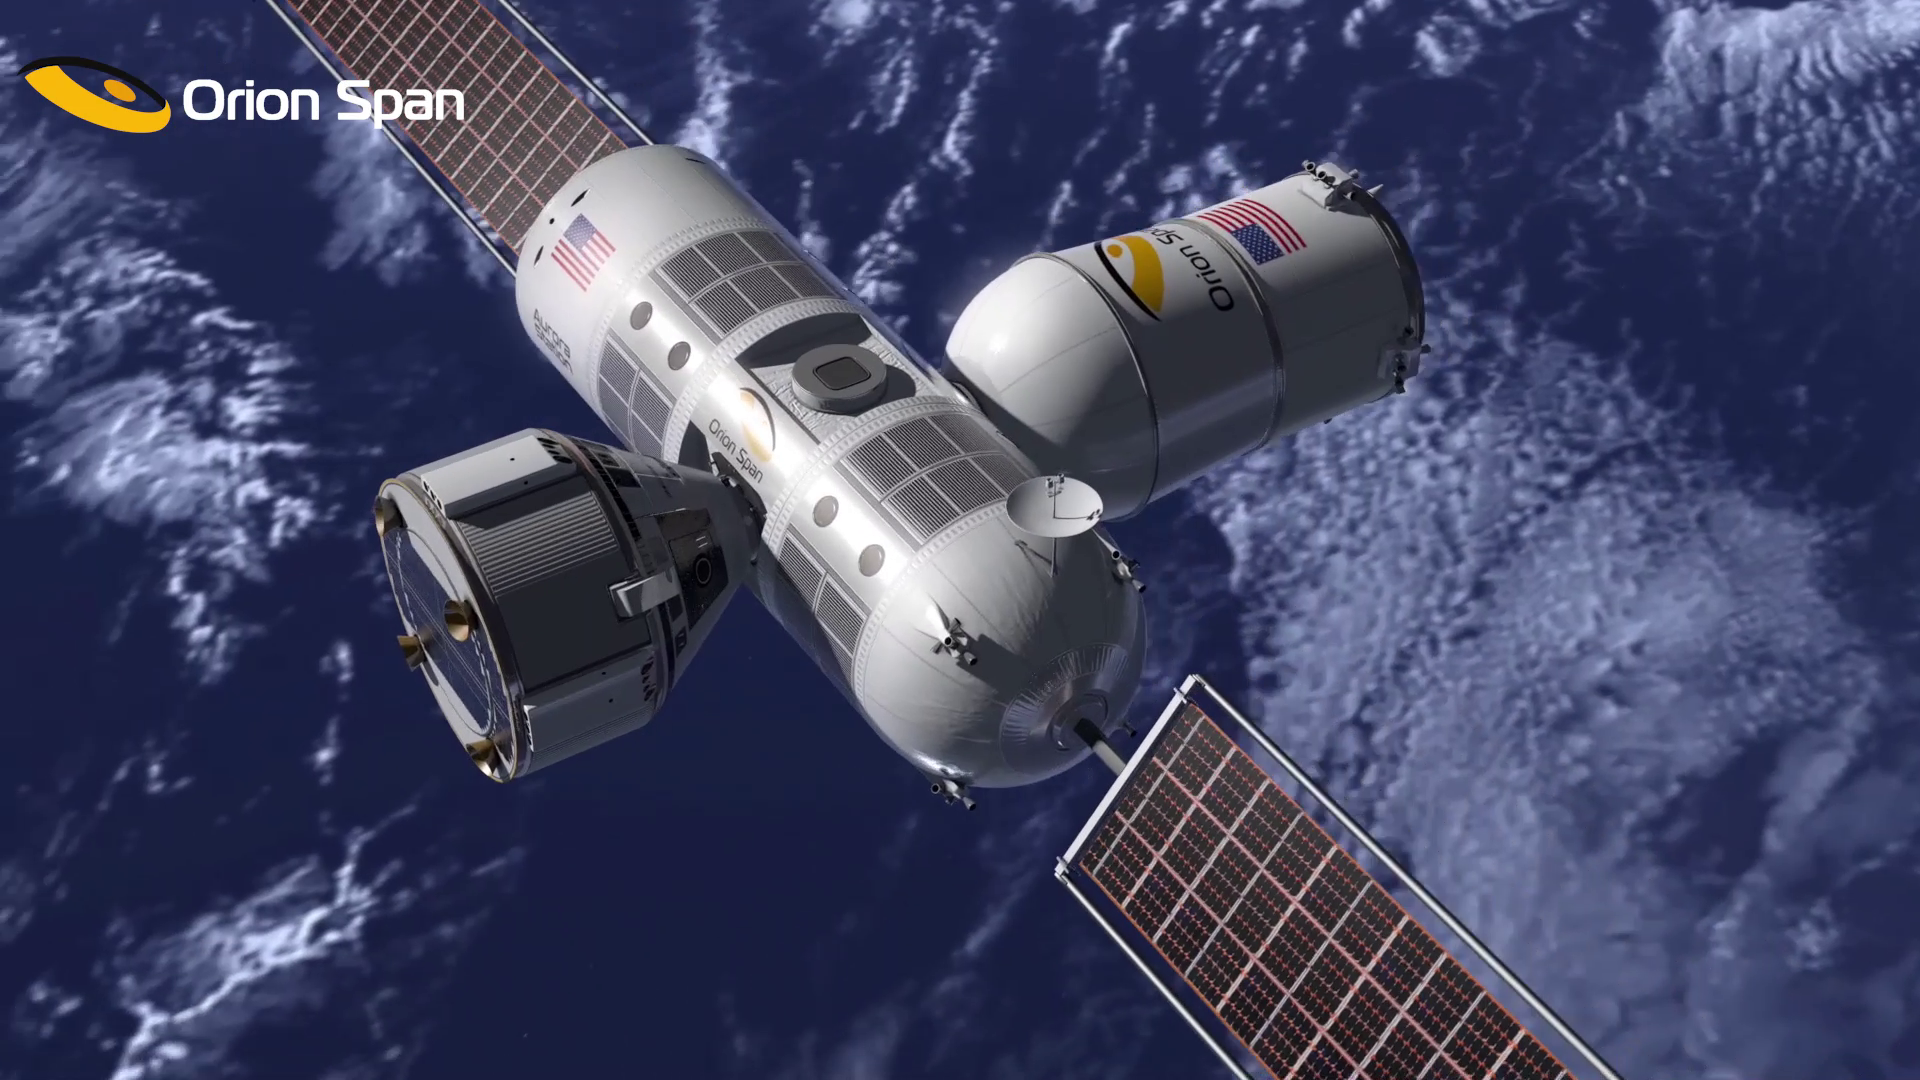 Conceptual view of Aurora Station (center), with crew transportation vehicle (left) and notional cargo vehicle (right).